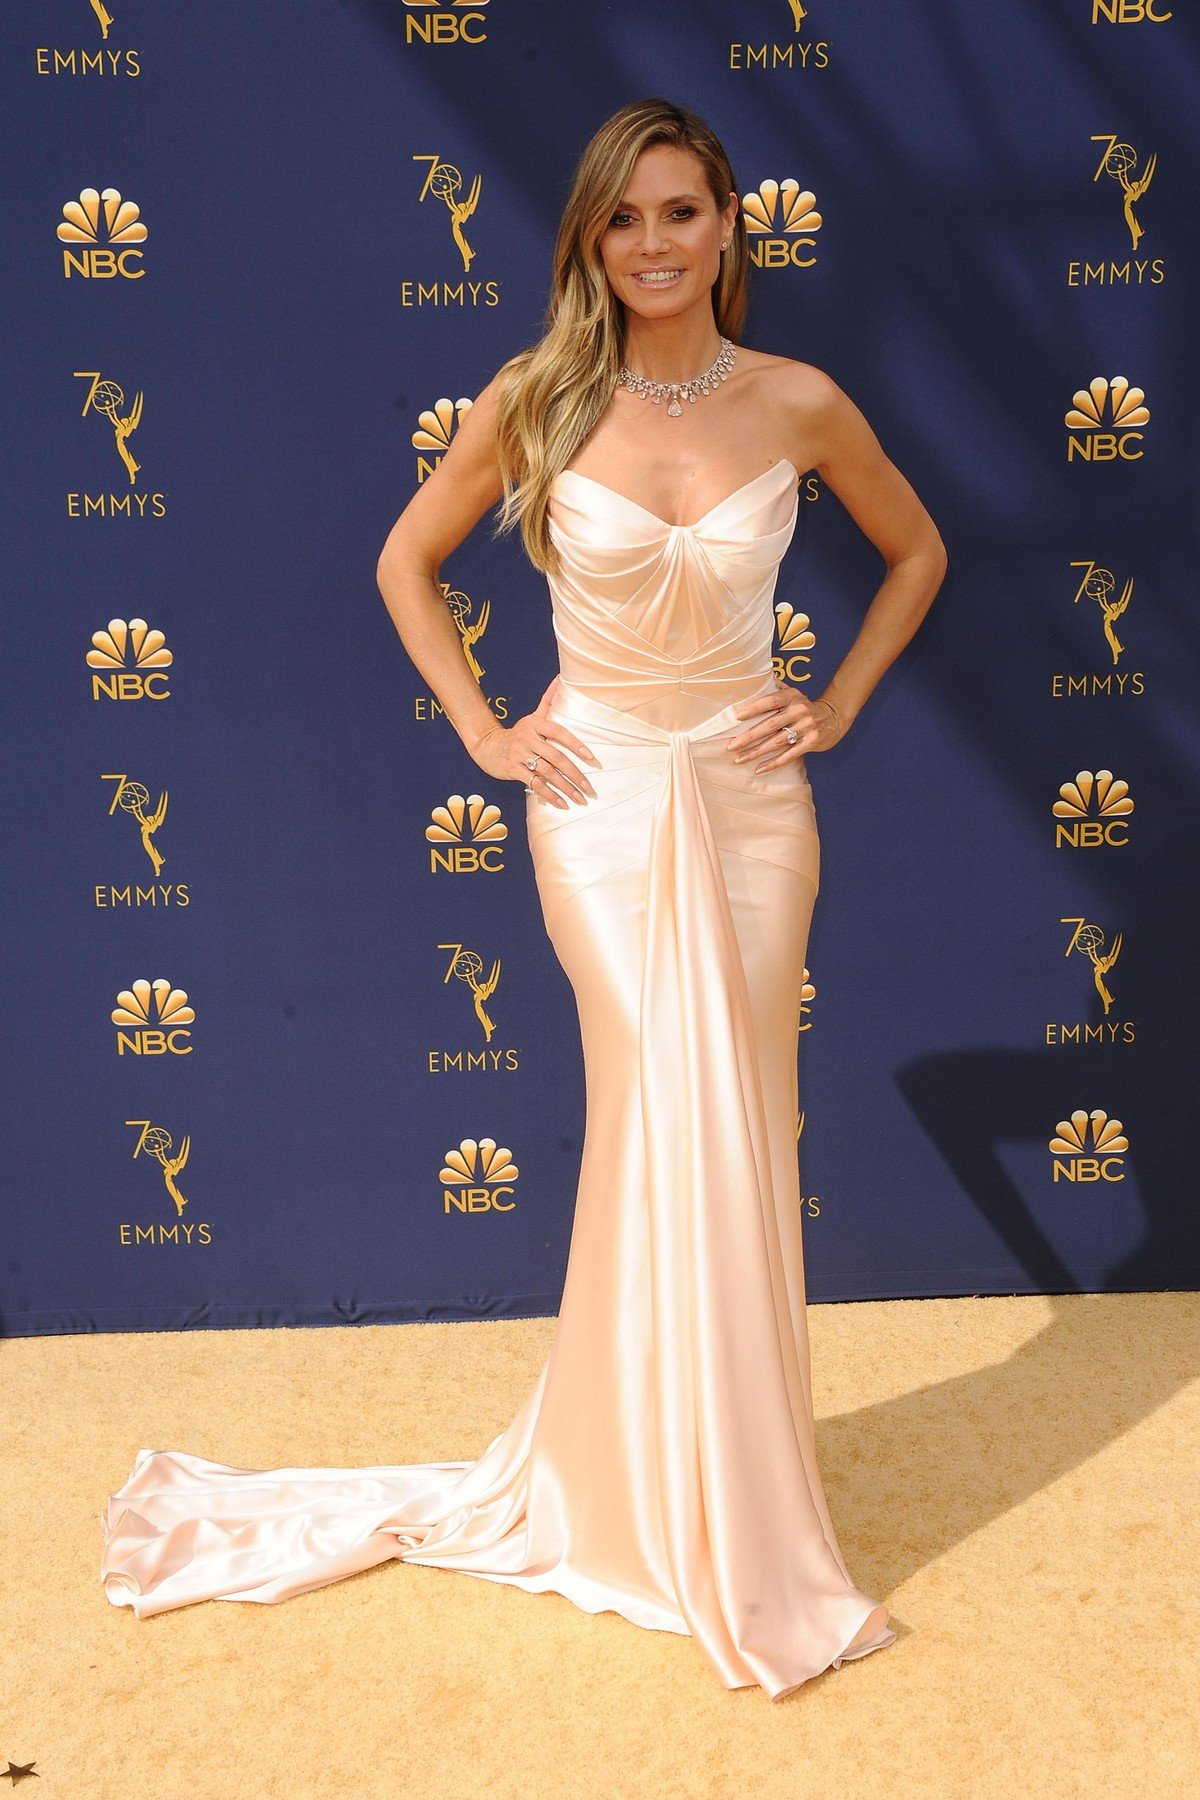 , Los Angeles, CA -20180917 - The 70th Primetime Emmy Awards Red Carpet, at Microsoft Theater  -PICTURED: Heidi Klum -, Image: 387151056, License: Rights-managed, Restrictions: , Model Release: no, Credit line: Profimedia, INSTAR Images